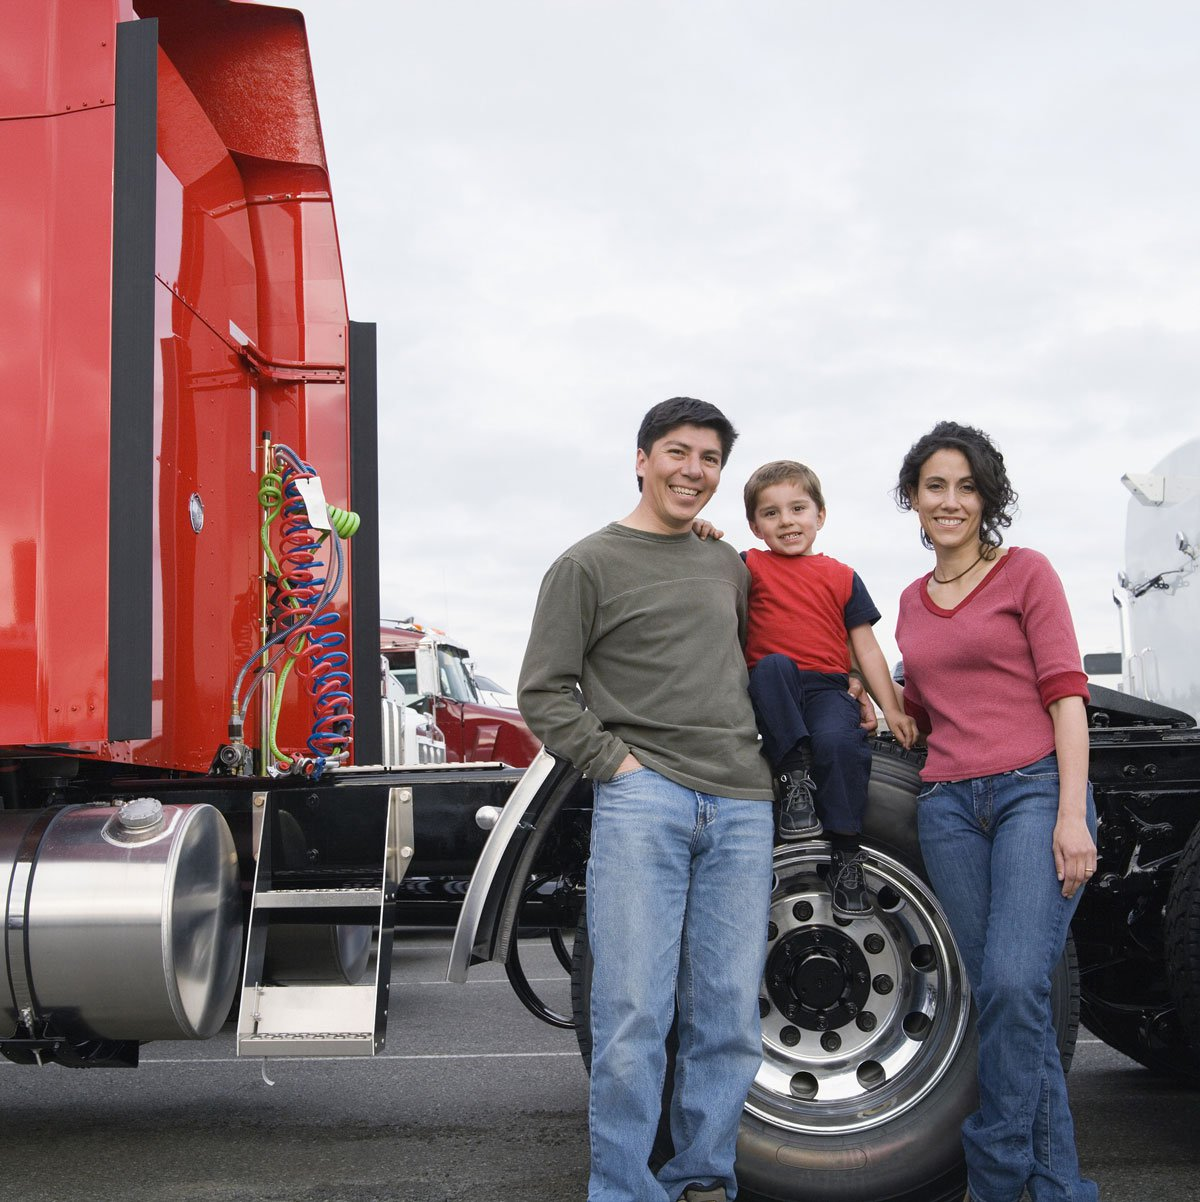 Start your trucking company